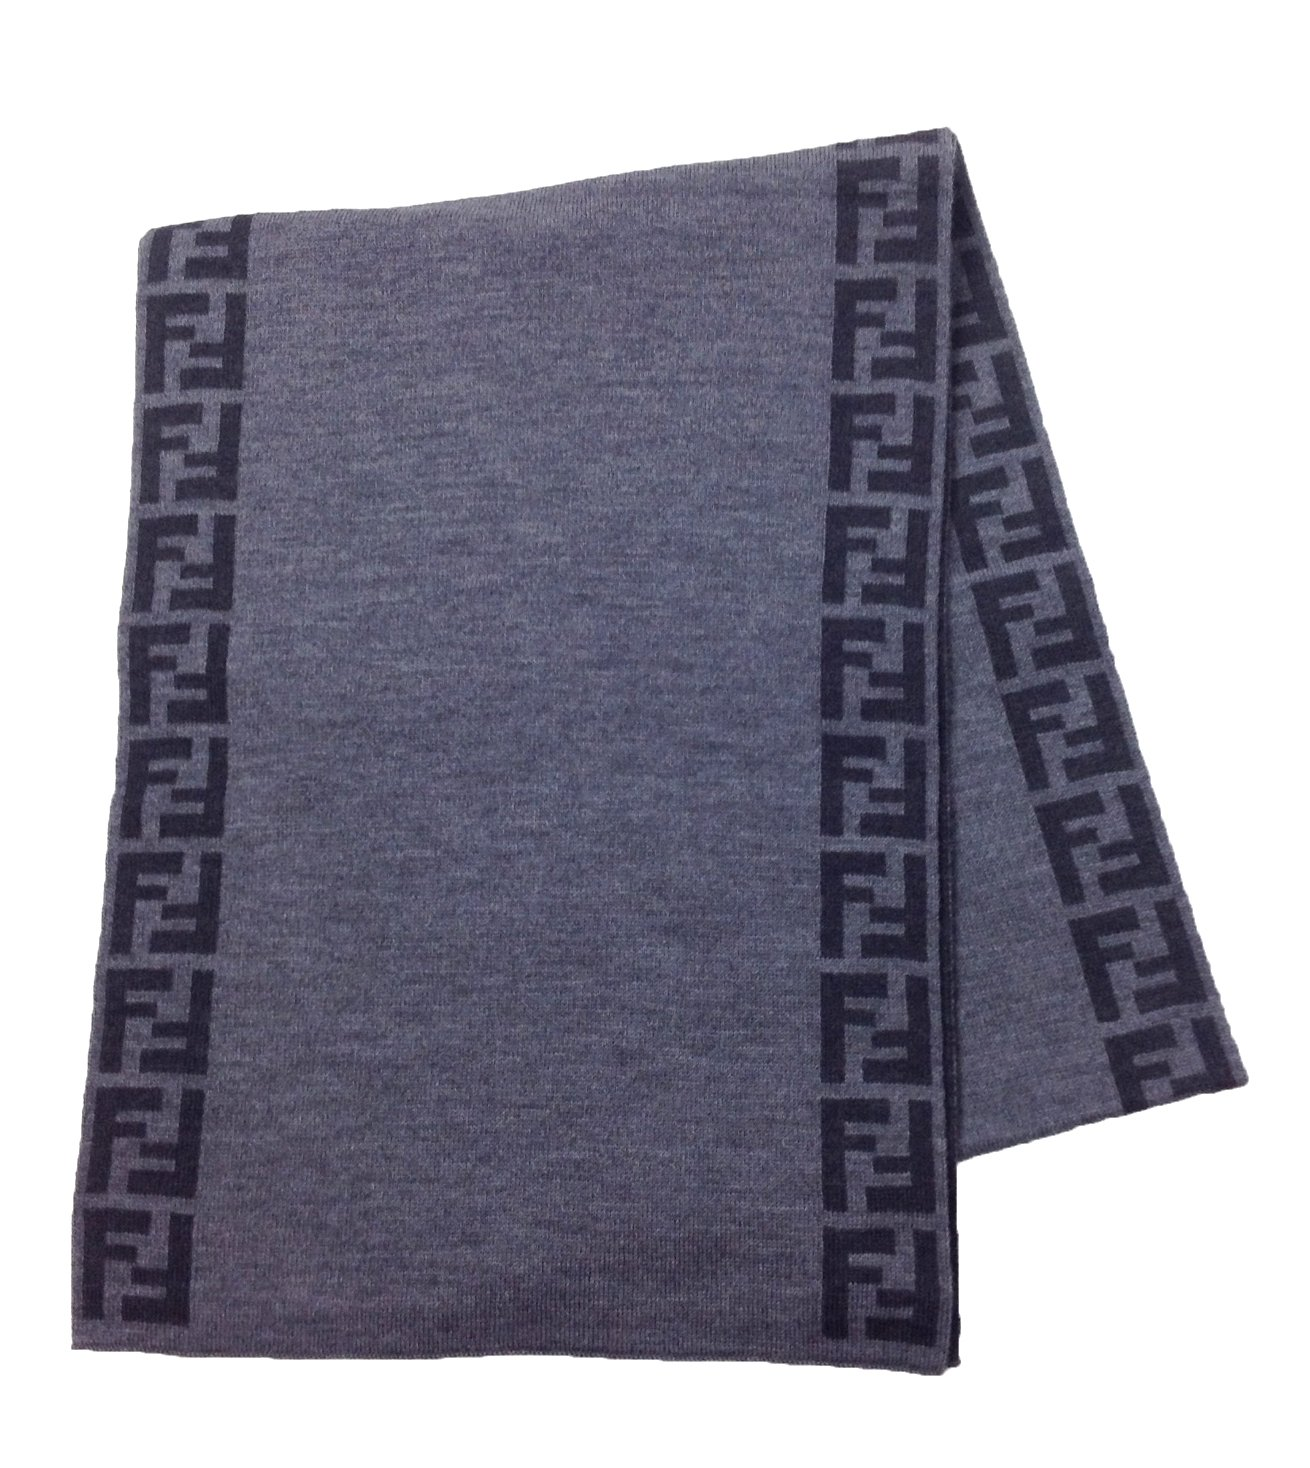 Fendi Knit Monogram Wool Scarf Zucca Stripe, Antracite Grey